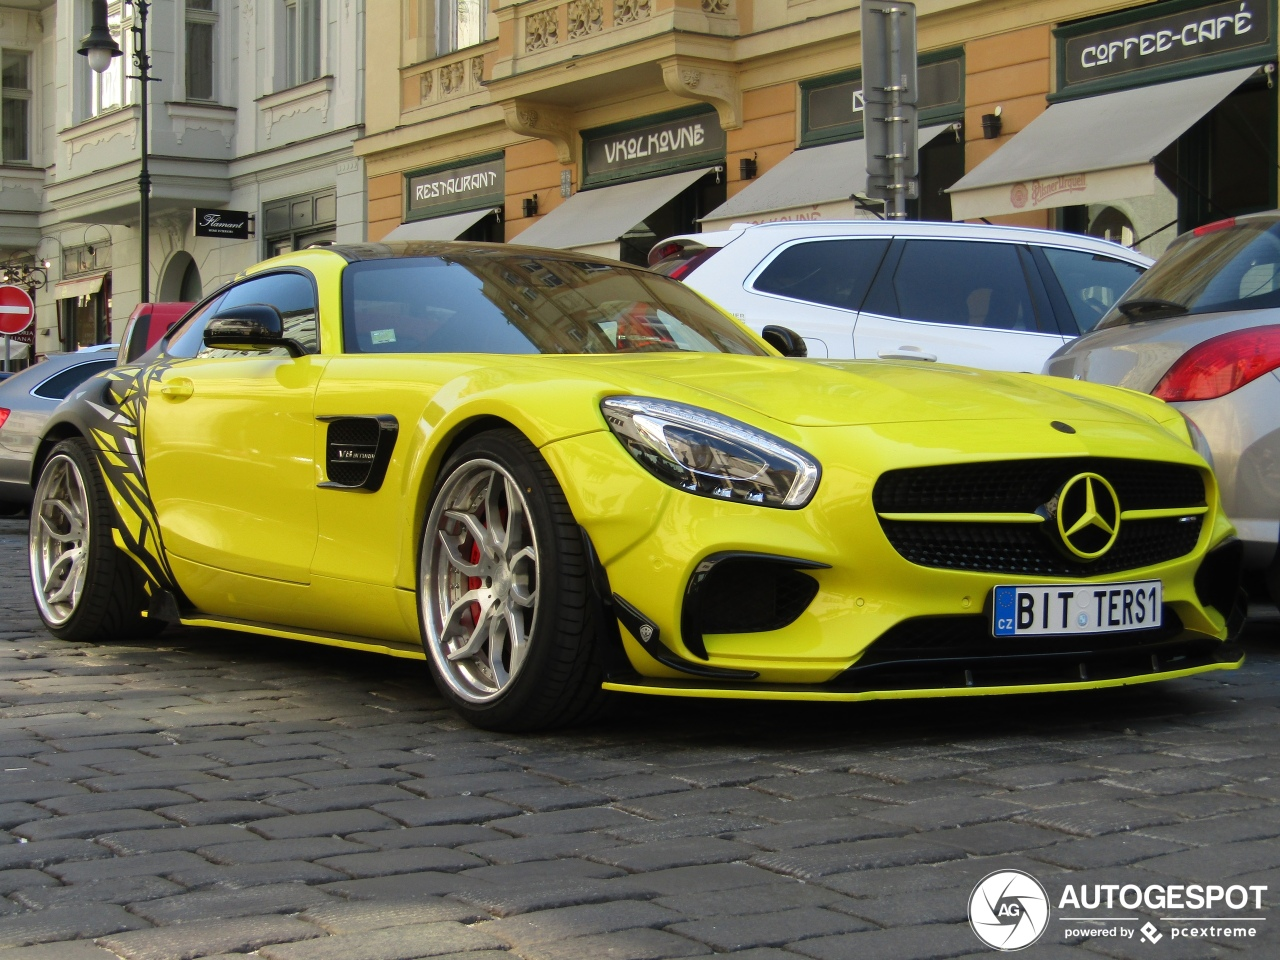 mercedes amg gt s prior design pd800 gt widebody 19 april 2019 autogespot. Black Bedroom Furniture Sets. Home Design Ideas